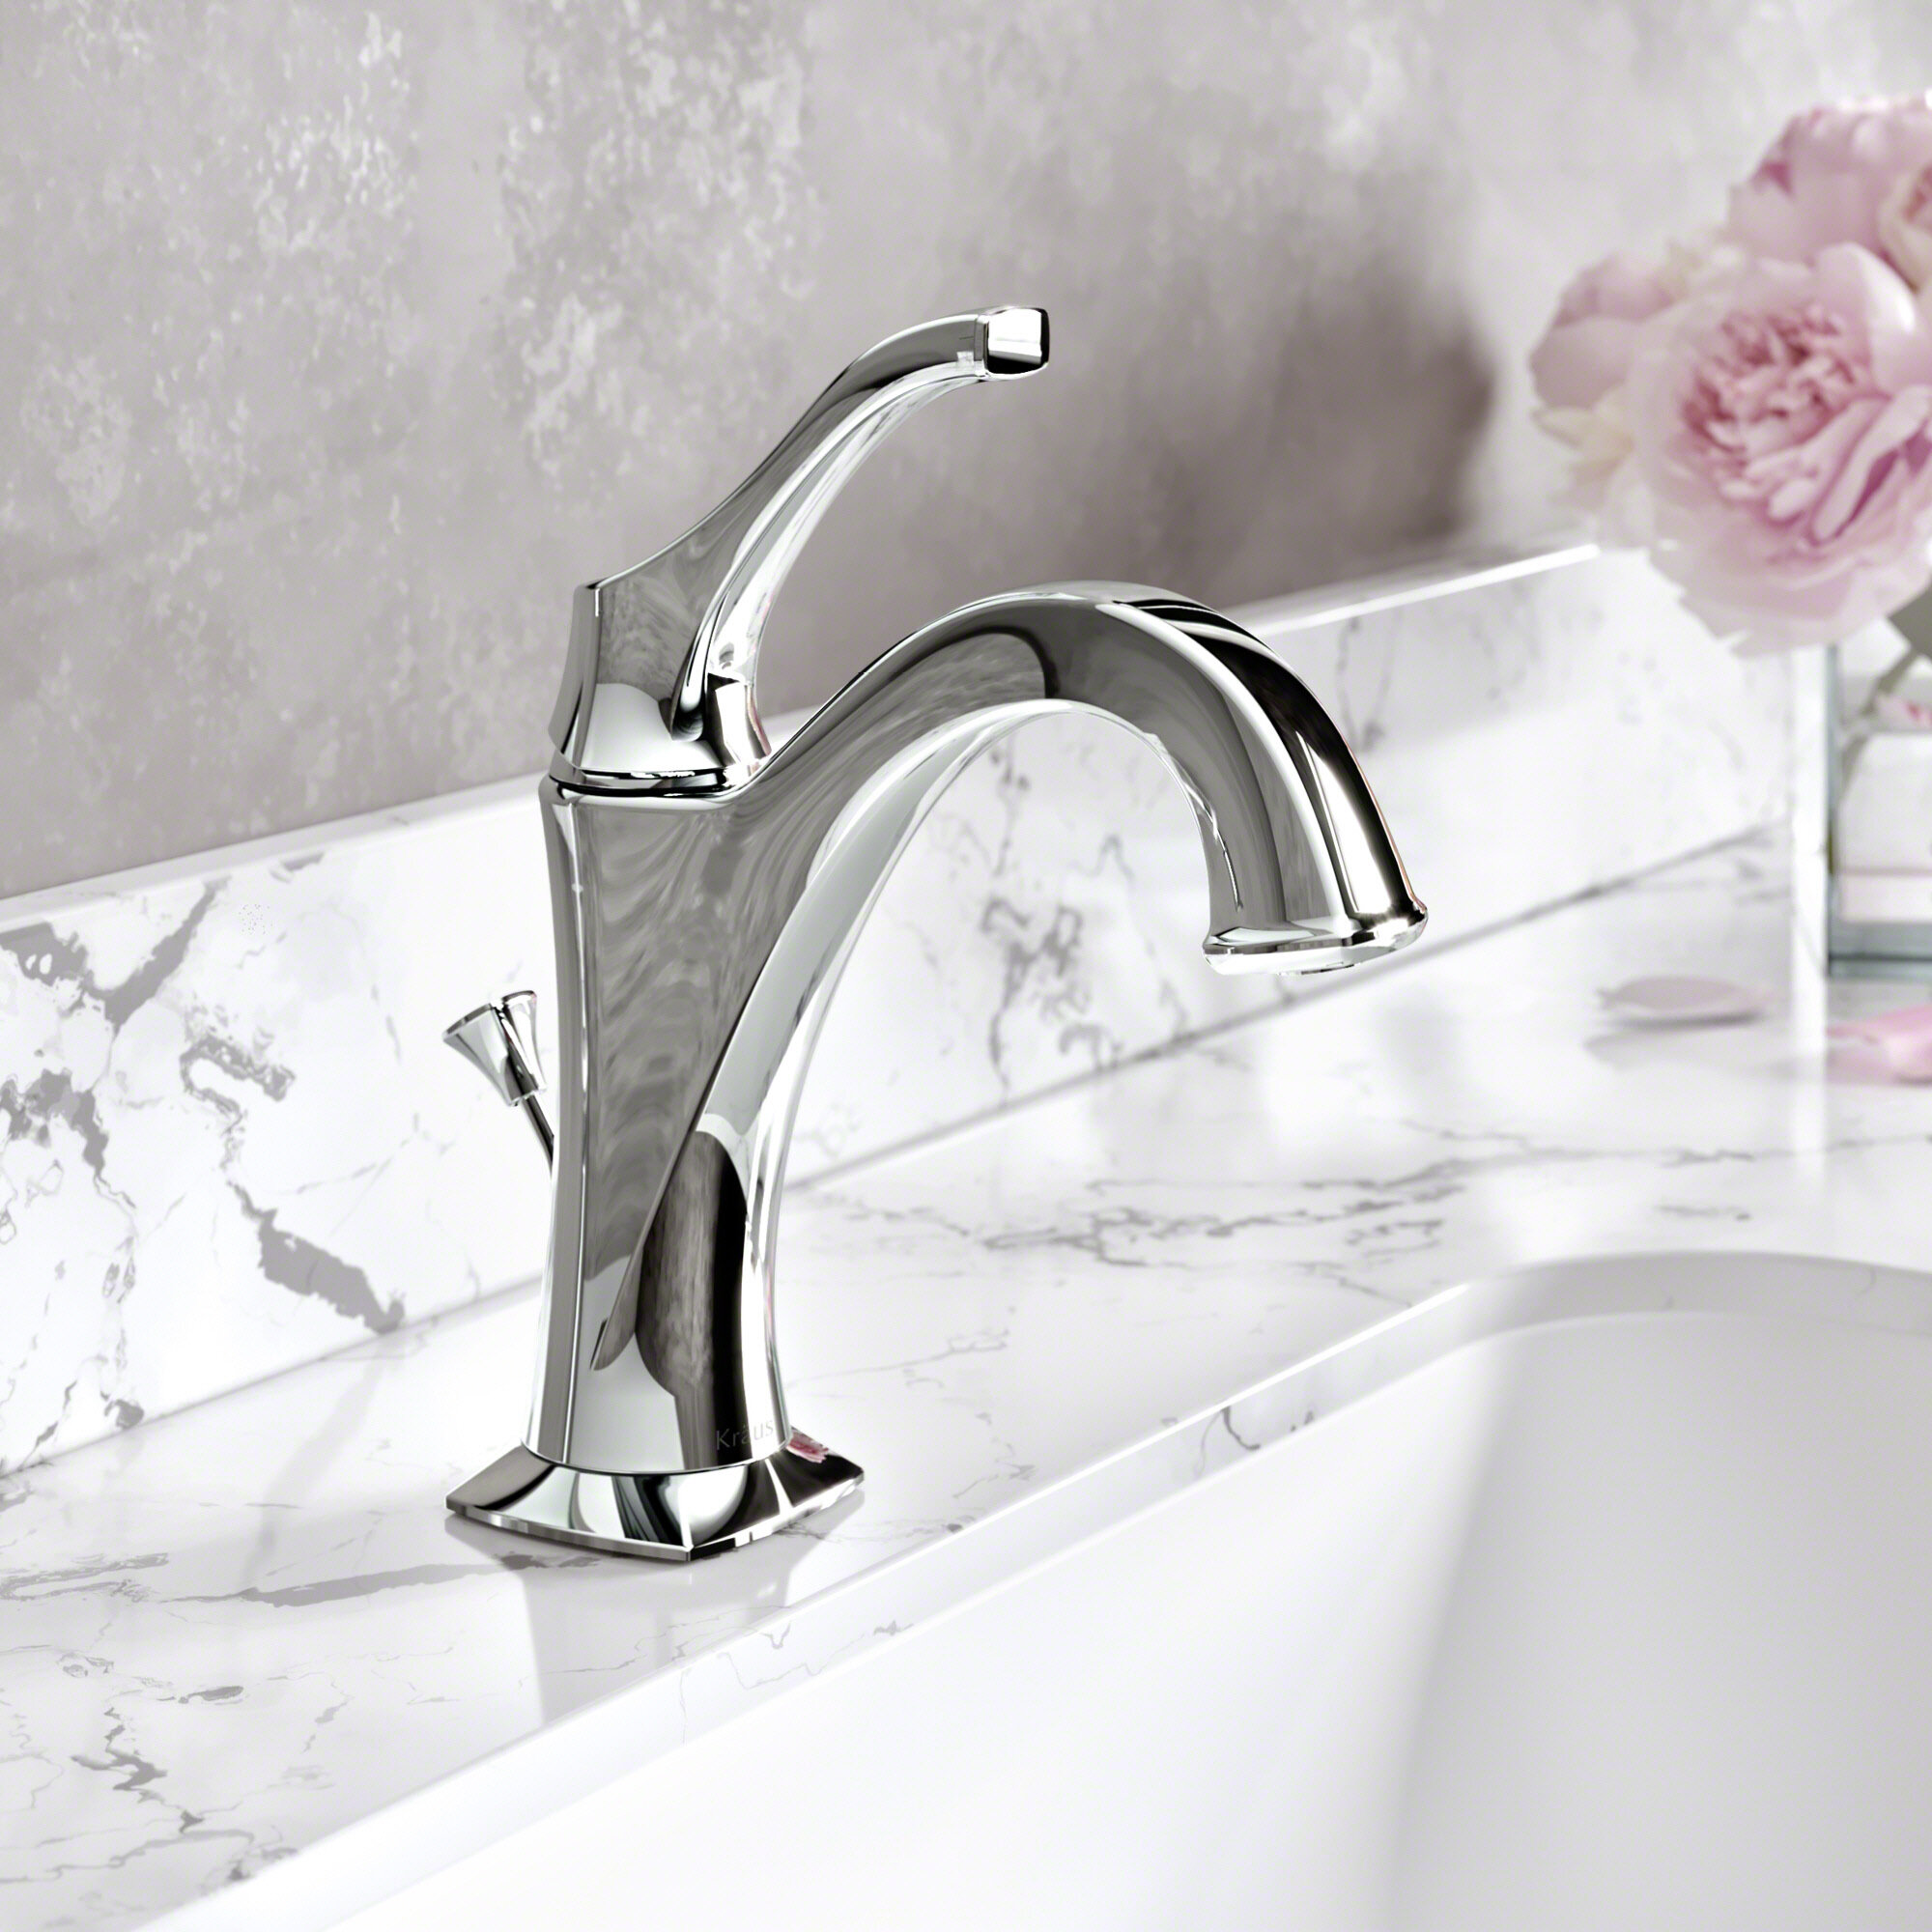 Red Barrel Studio Giancarlo Single Hole Bathroom Faucet with Drain ...